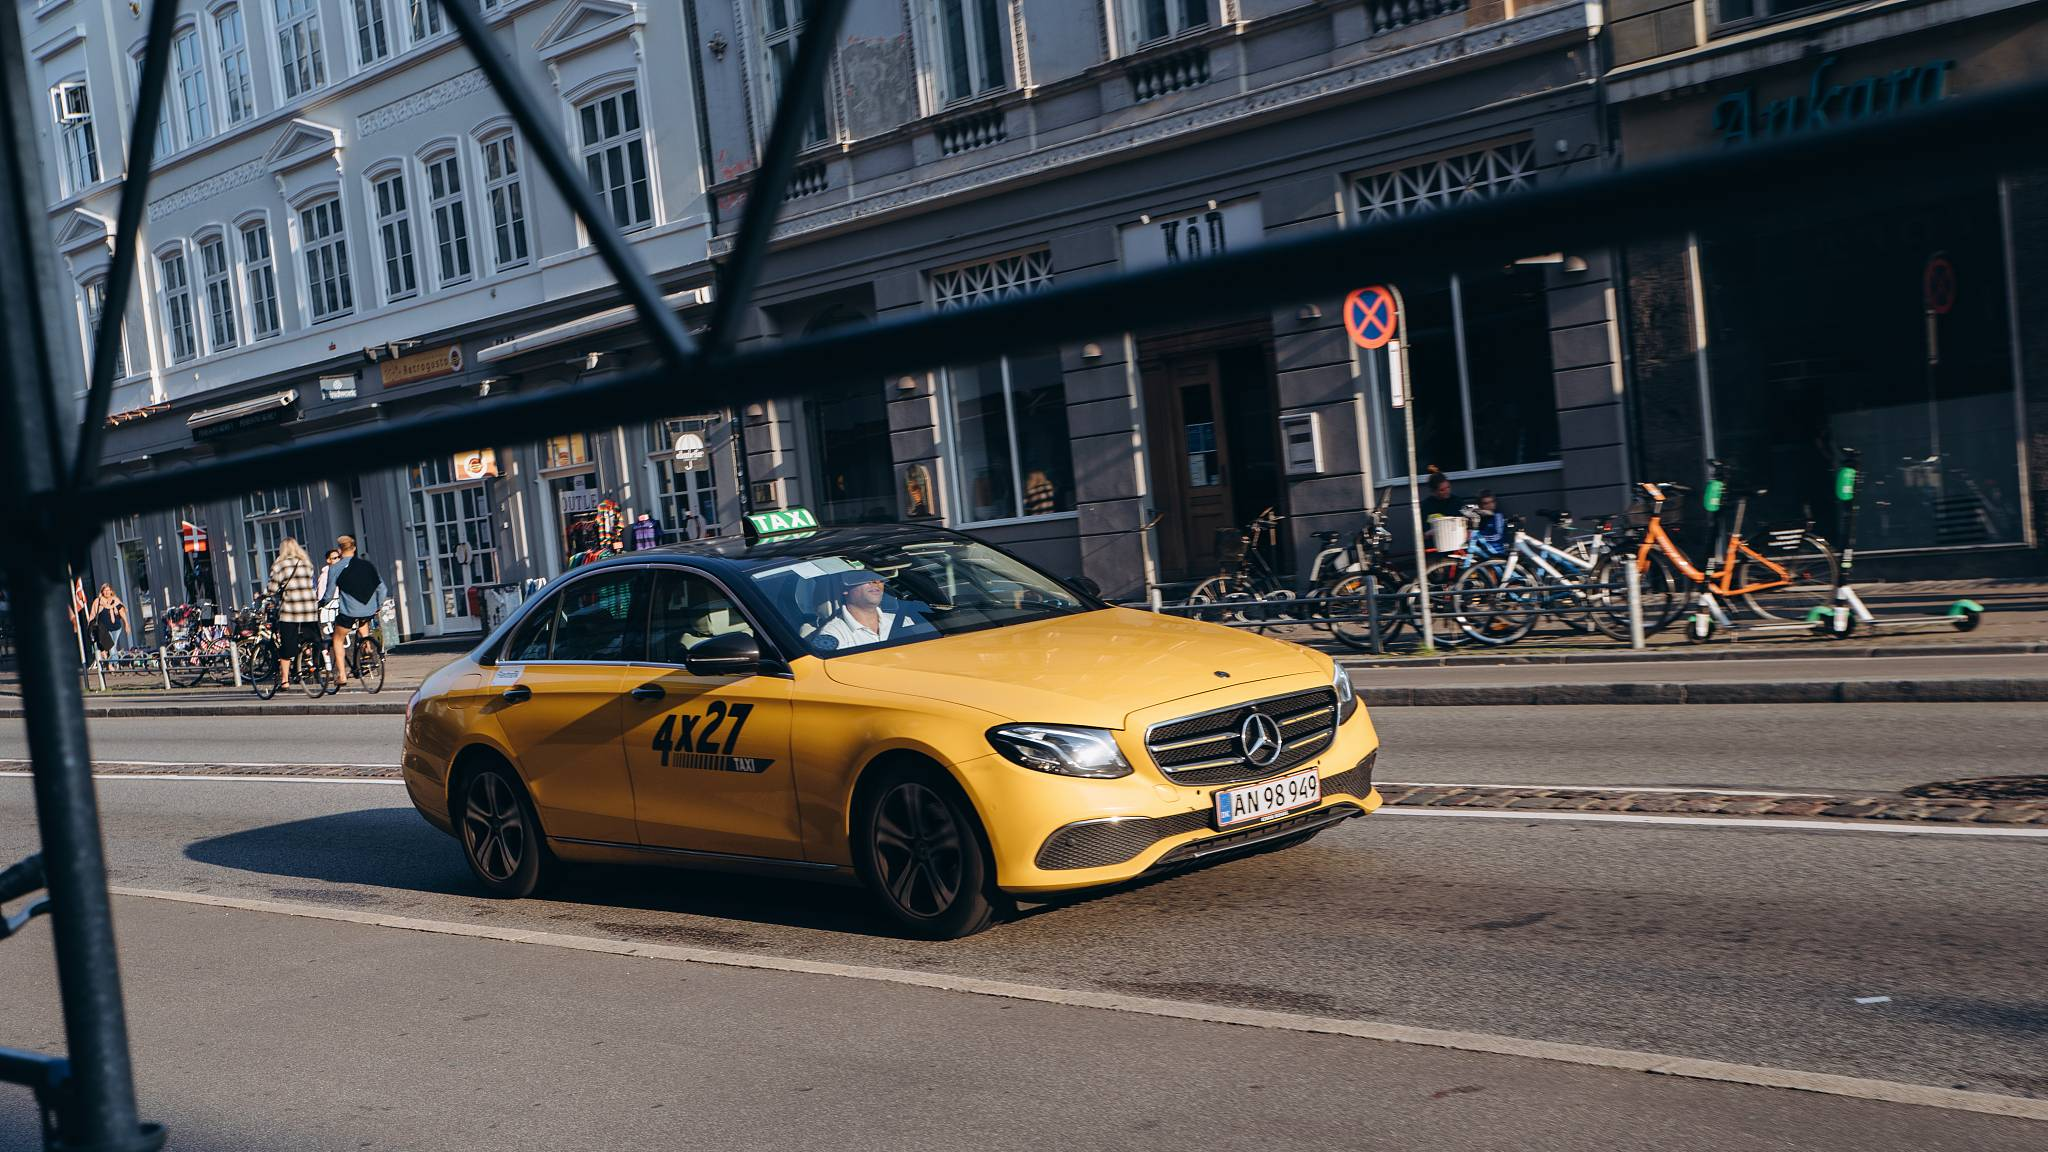 Taxi drivers in Denmark will have to prove Danish language skills under new law